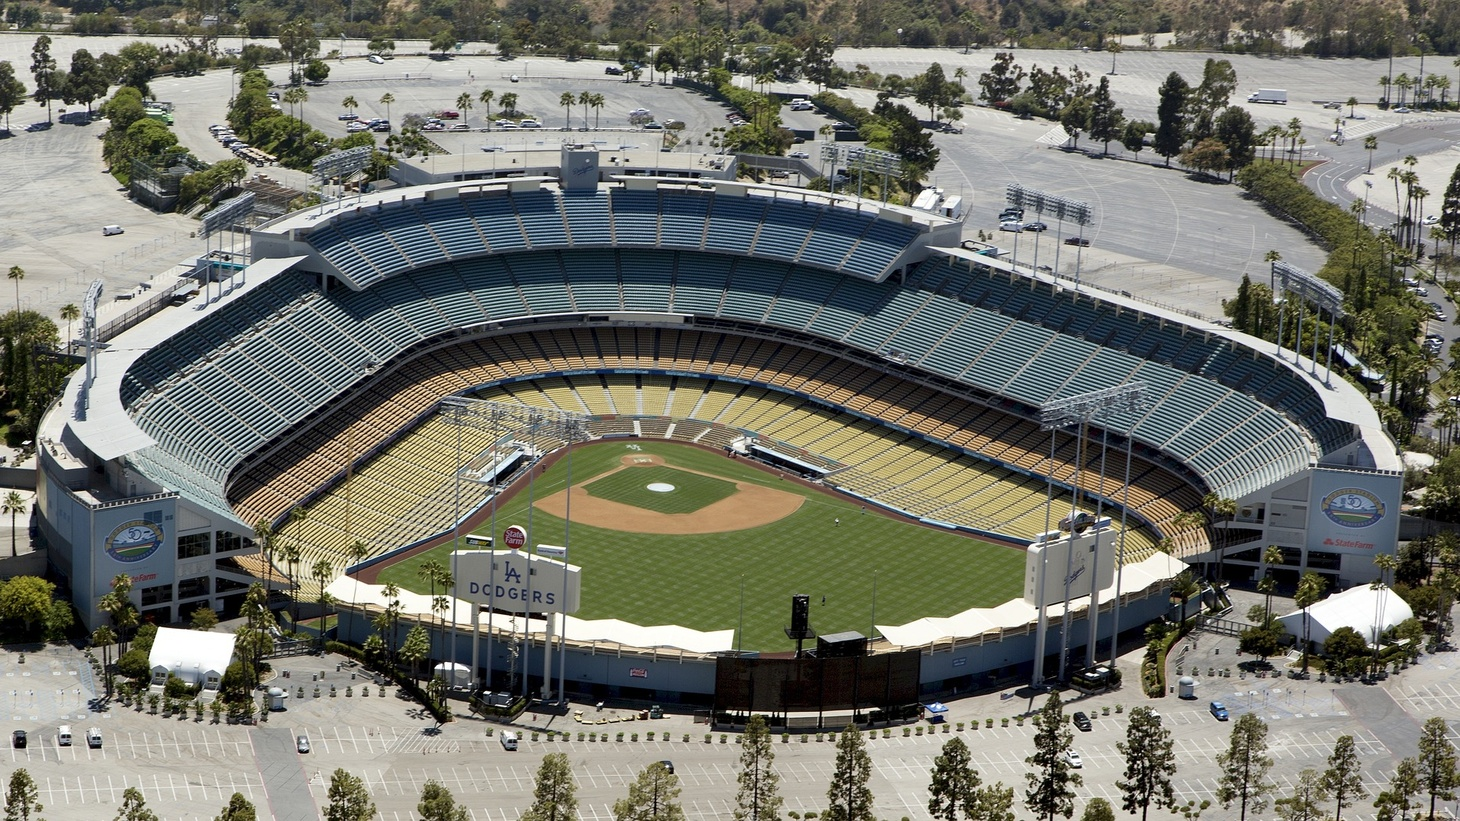 In the future, Angelenos might have the option of taking a gondola from Union Station to Dodger Stadium. The LA Metro board will do an environmental review of that plan.